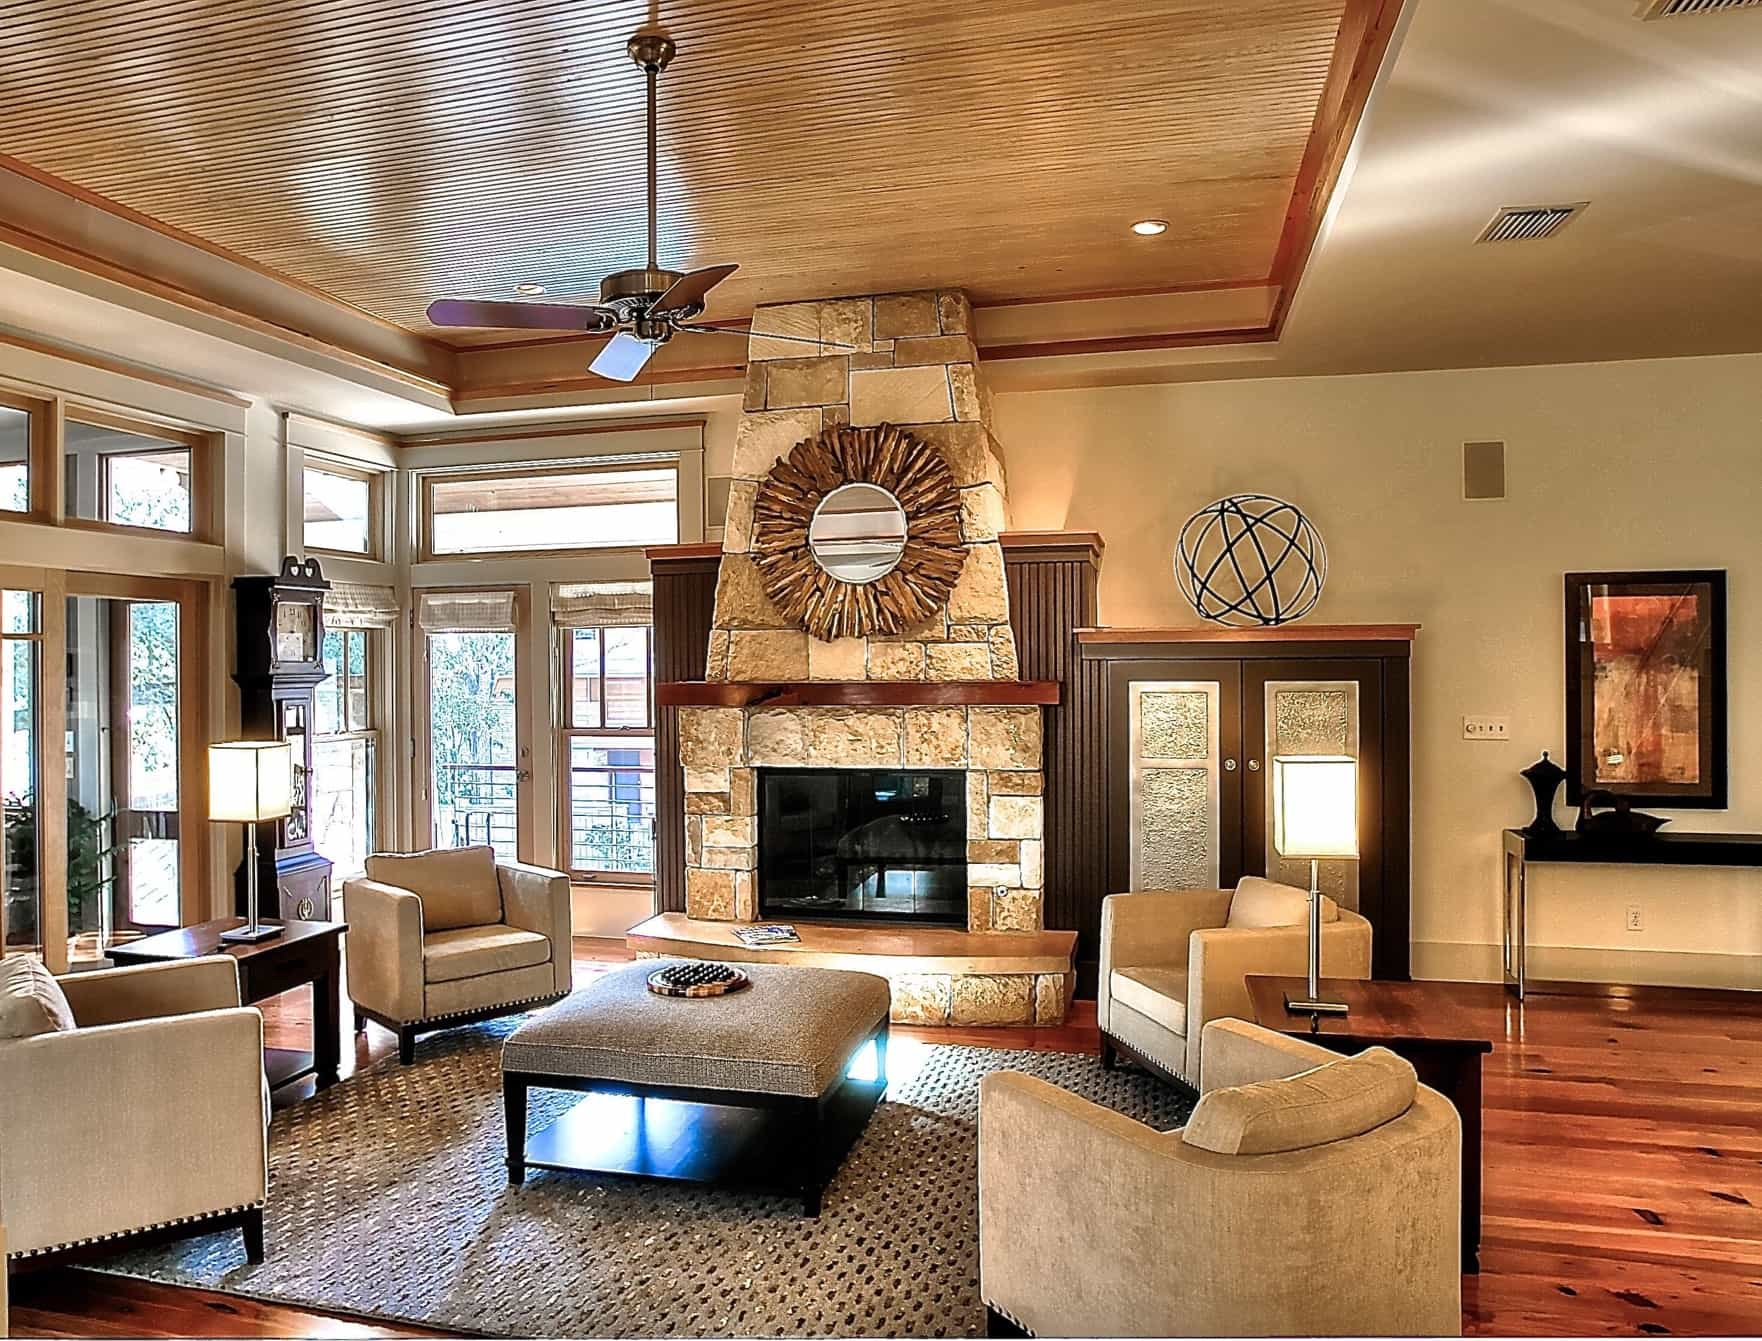 Featured Image of Tray Ceiling And Stone Fireplace For Modern Living Room